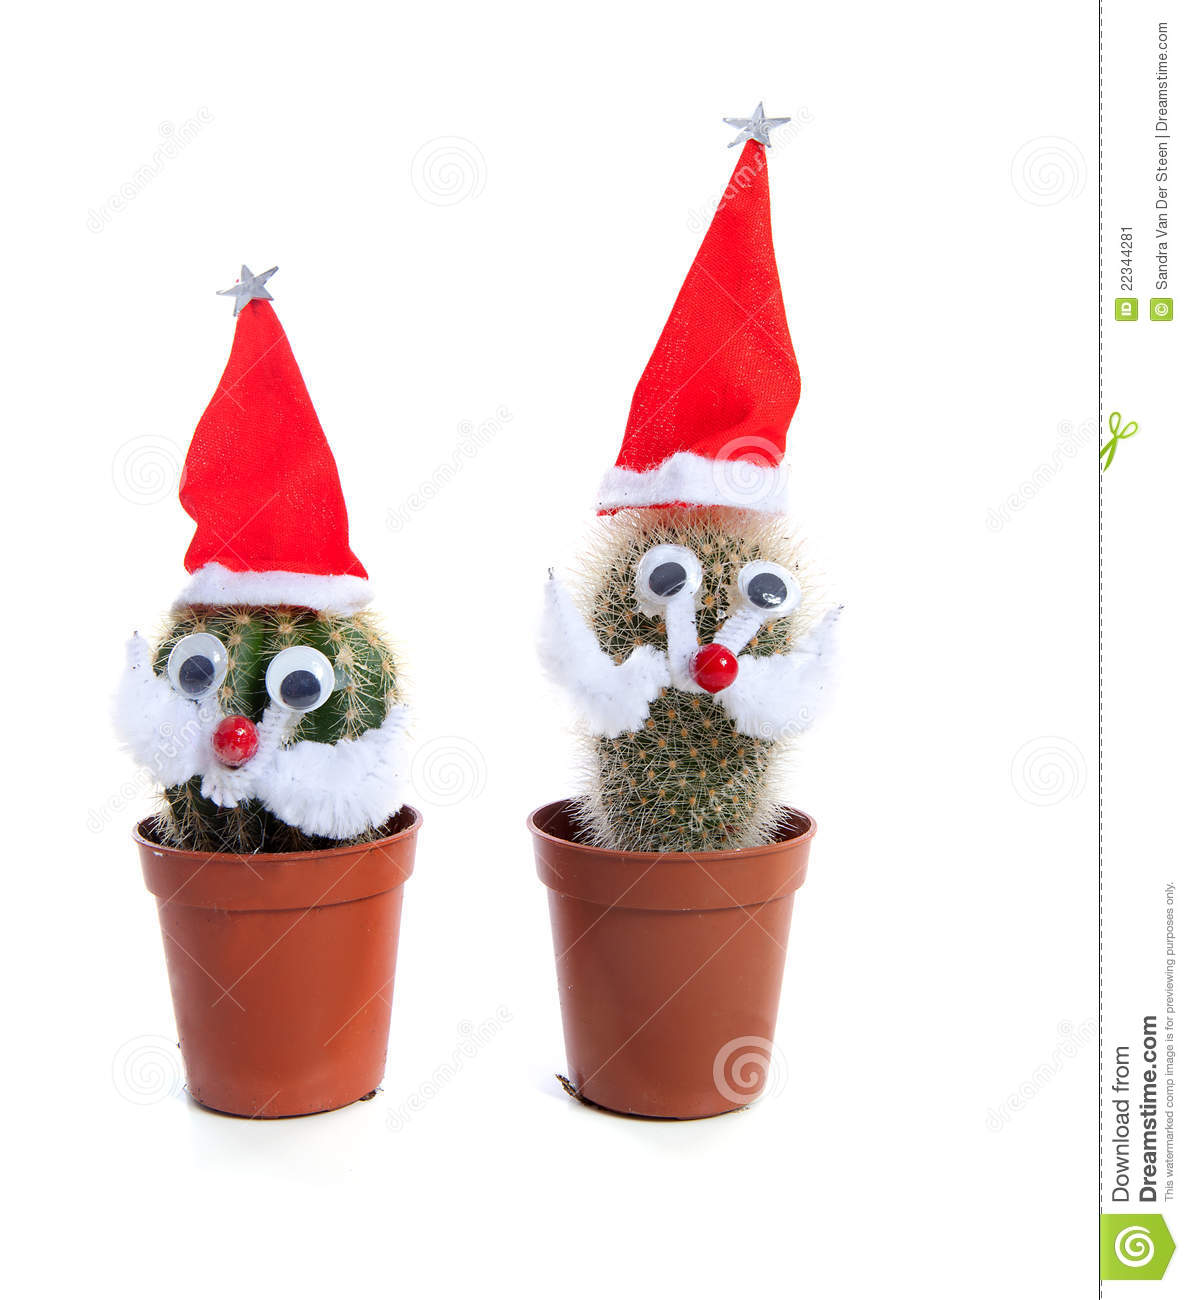 Cactus Decorated For Christmas: Funny Decorated Cactus Plants For Christmas Stock Image